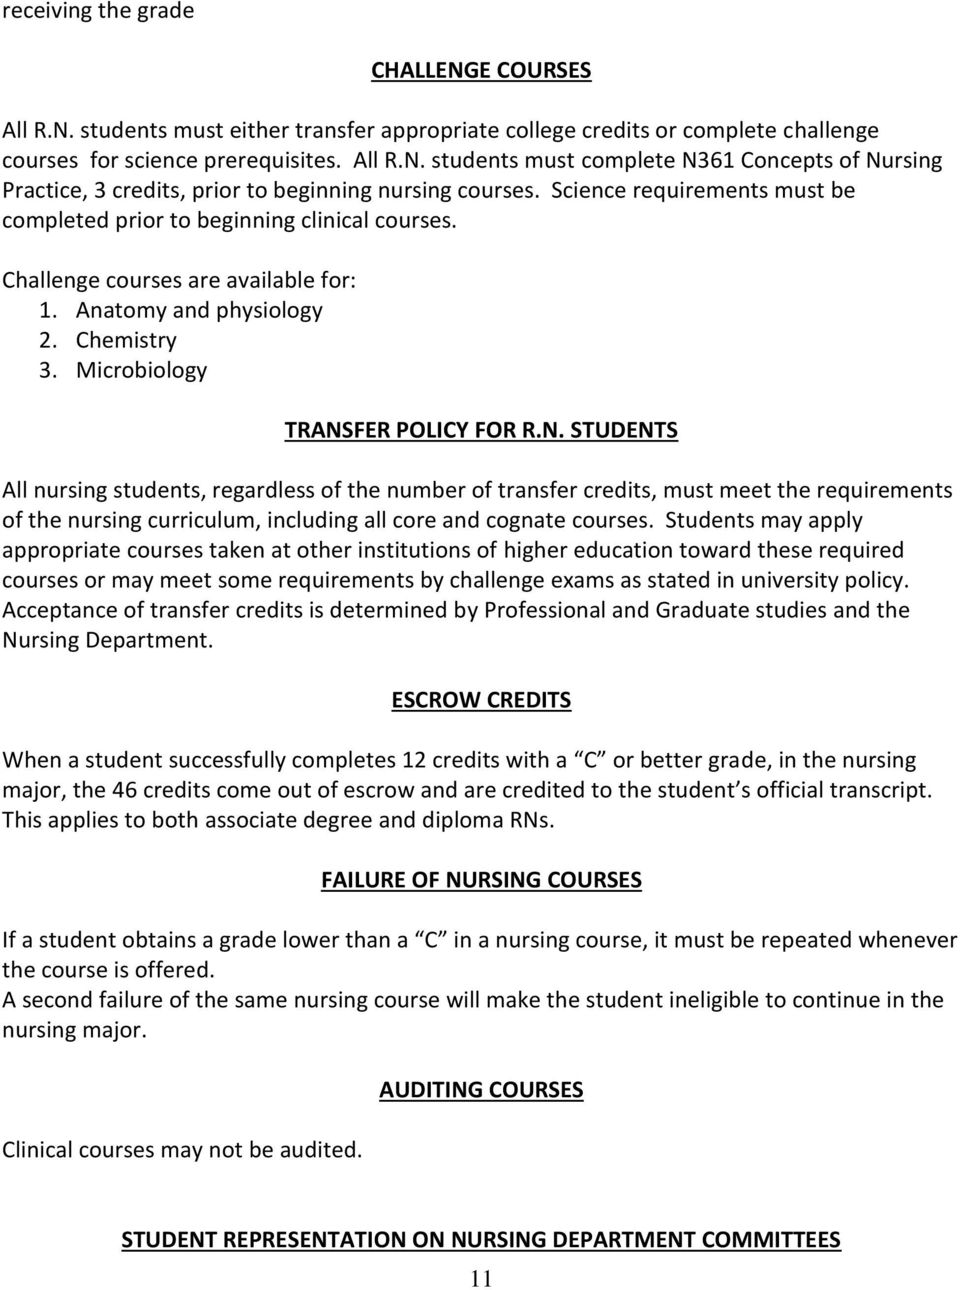 FER POLICY FOR R.N. STUDENTS All nursing students, regardless of the number of transfer credits, must meet the requirements of the nursing curriculum, including all core and cognate courses.